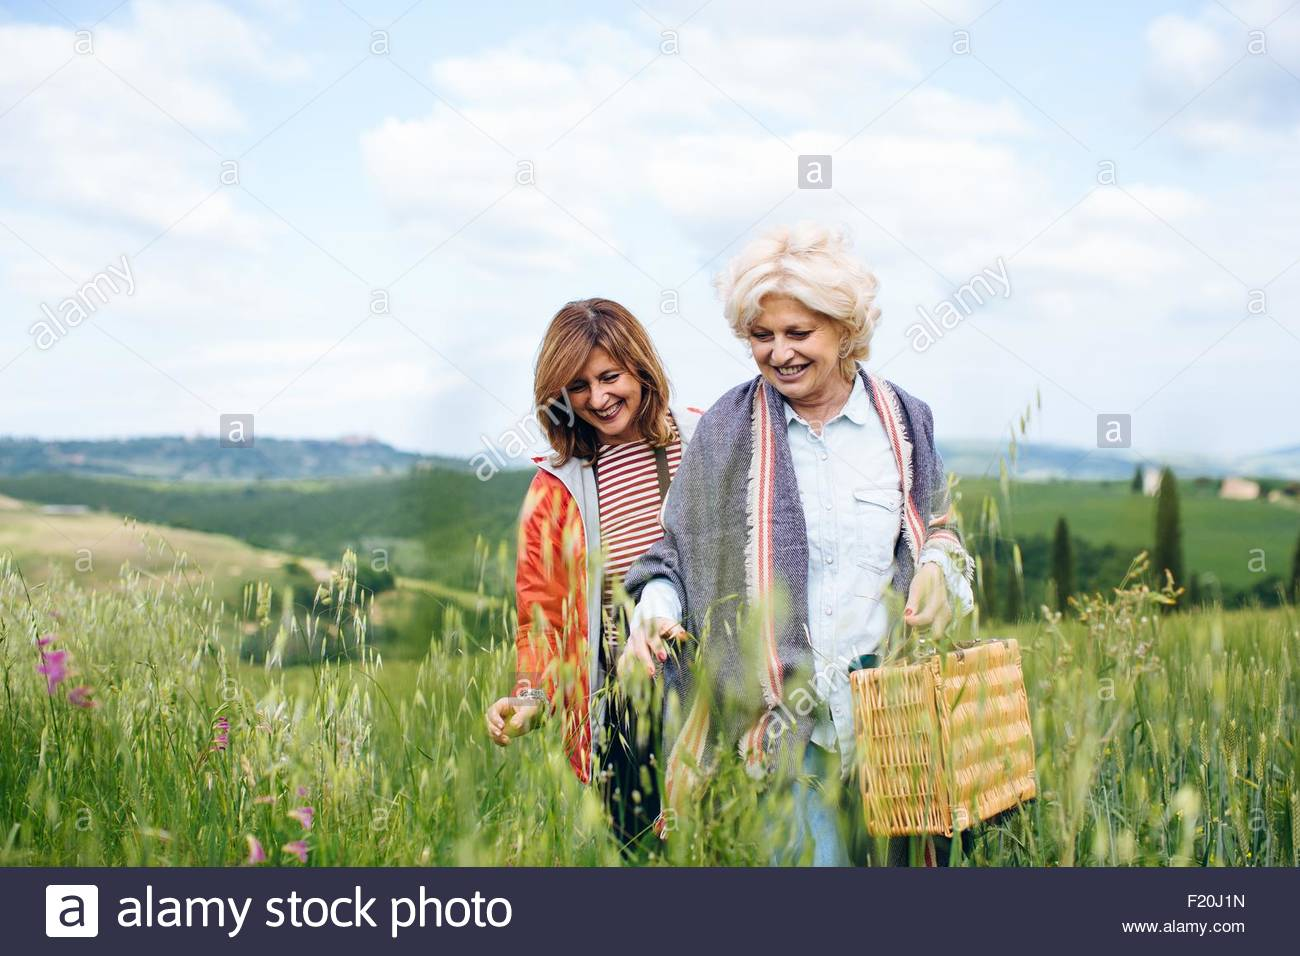 Two mature women carrying picnic basket in wheatfield, Tuscany, Italy - Stock Image